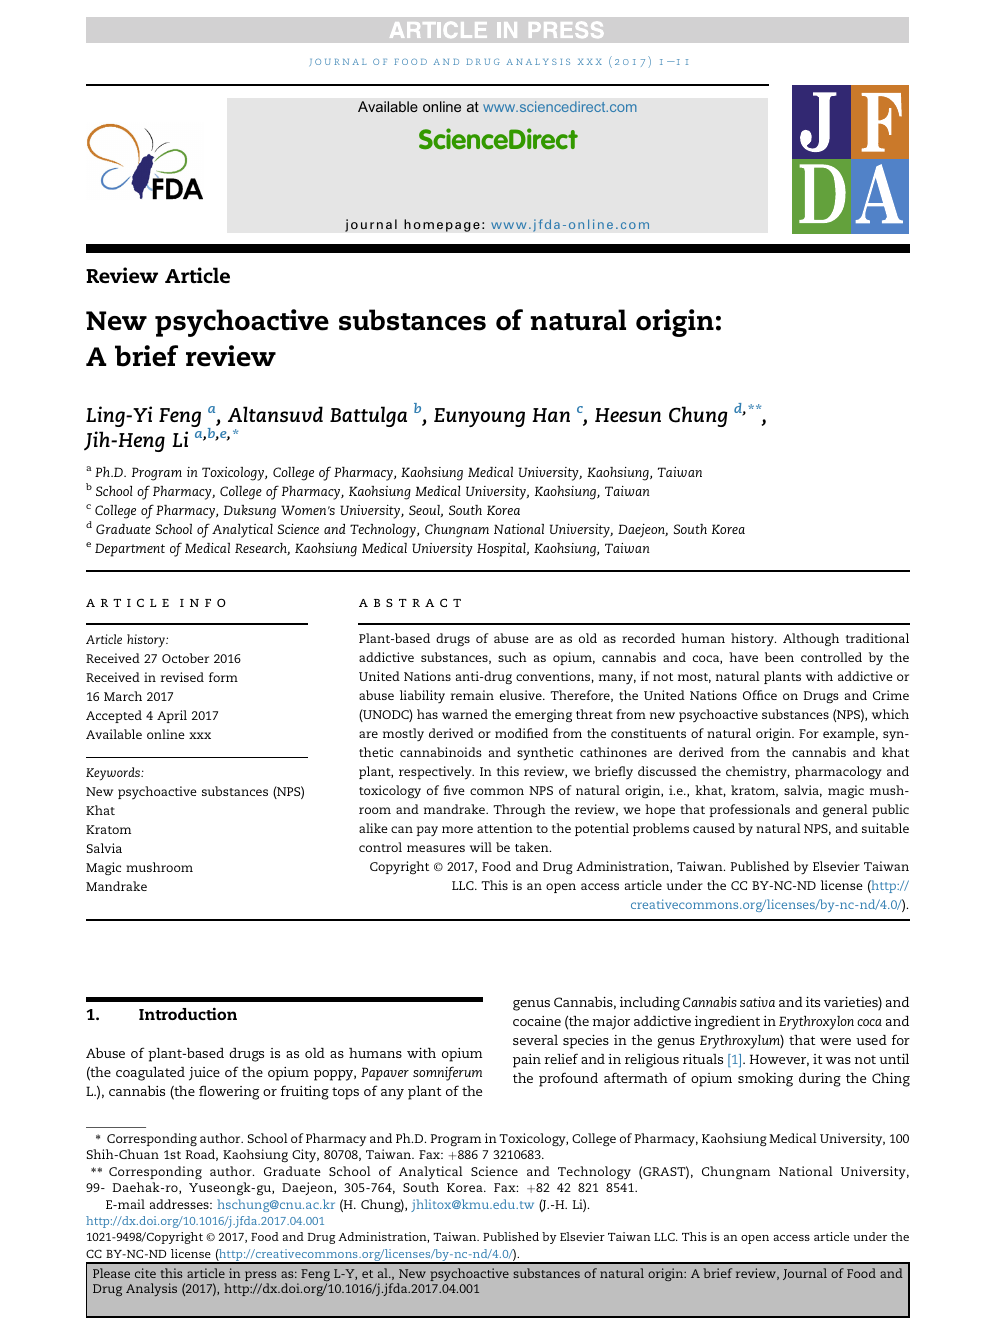 New psychoactive substances of natural origin: A brief